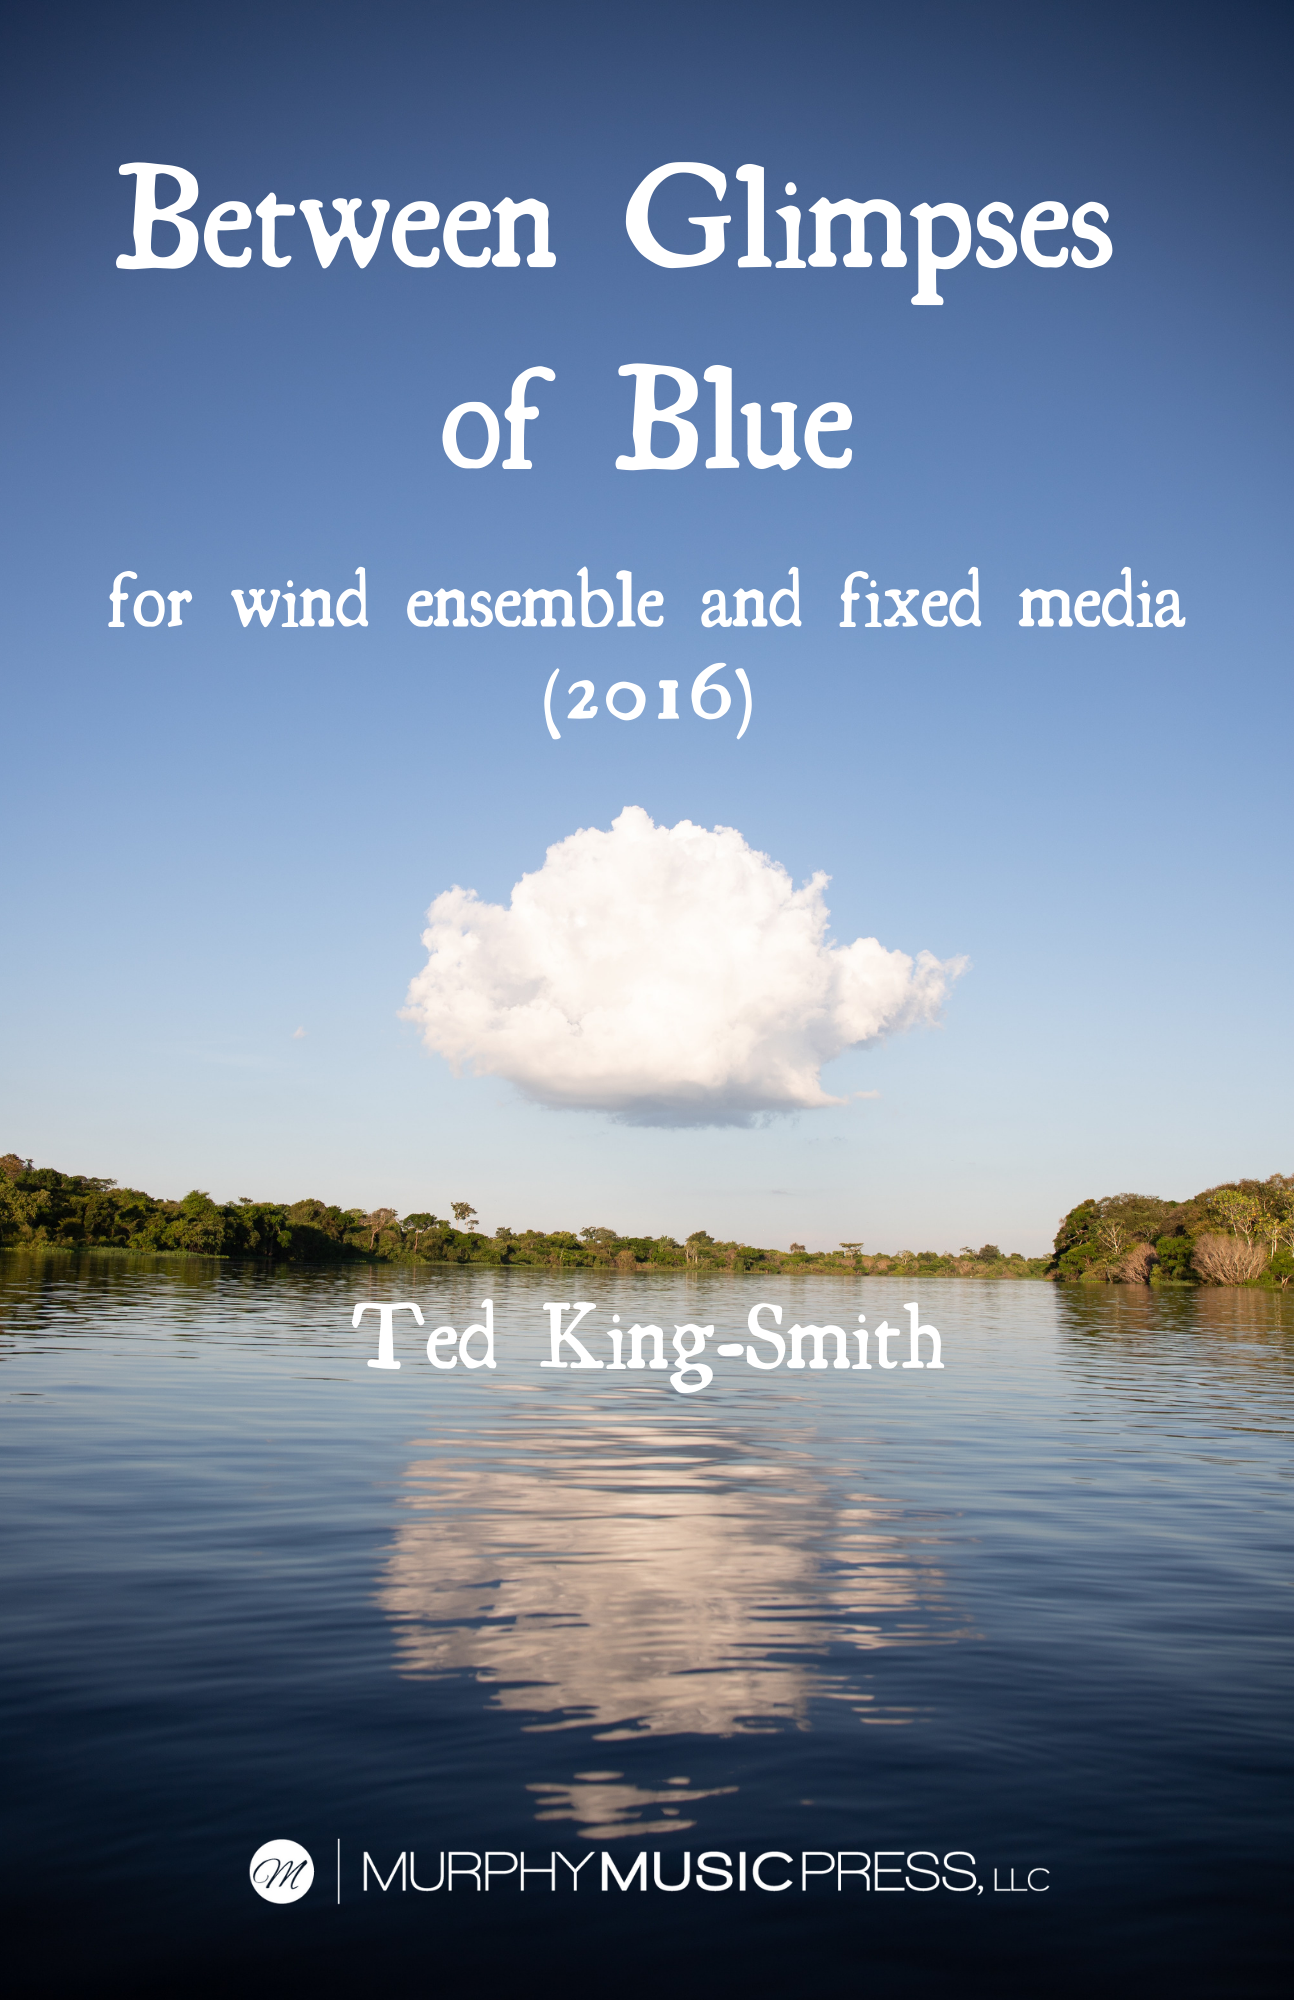 Between Glimpses Of Blue by Ted King-Smith